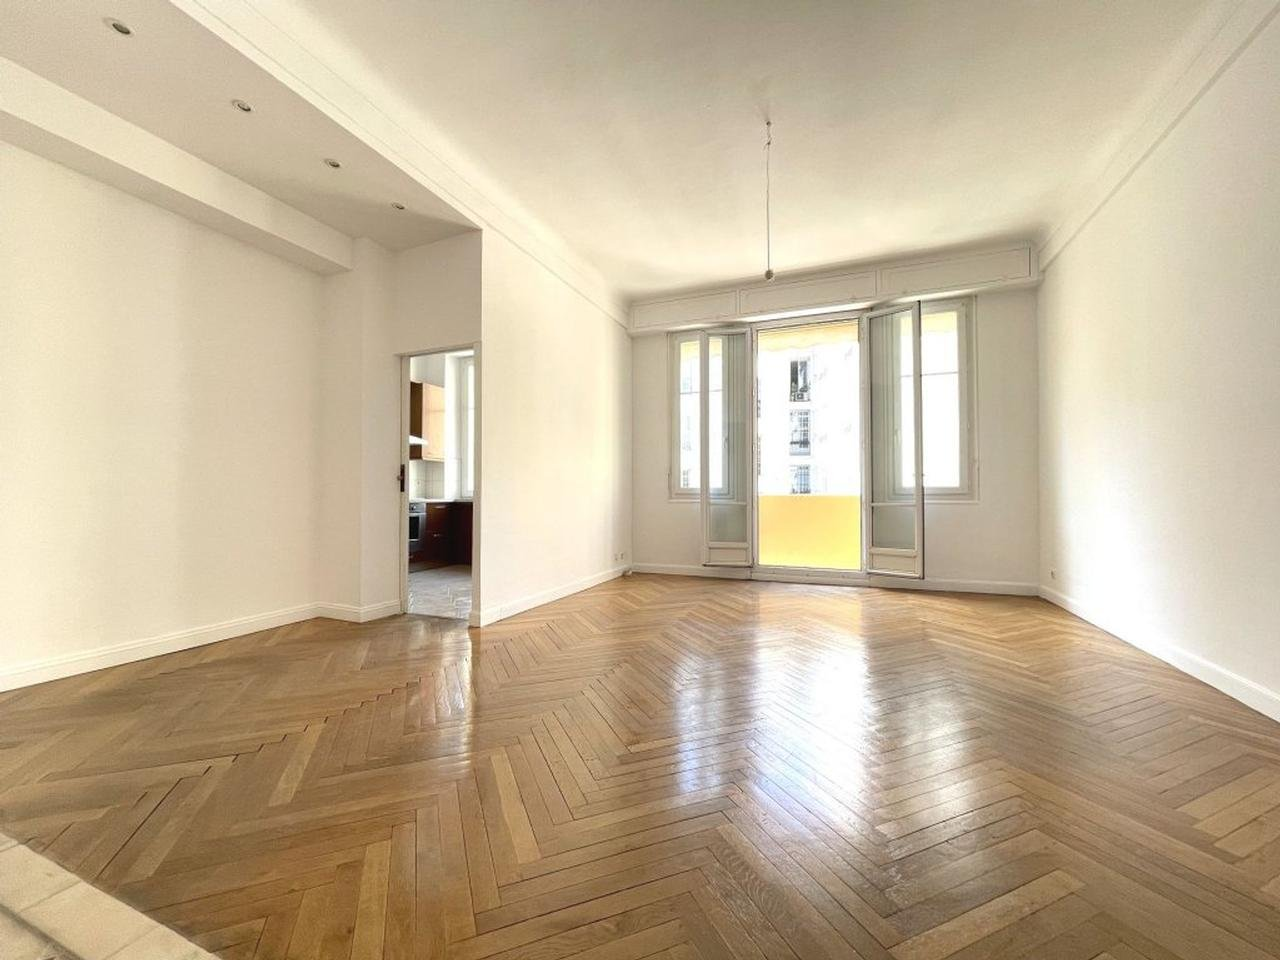 Appartement  3 Rooms 95.45m2  for sale   375000 €